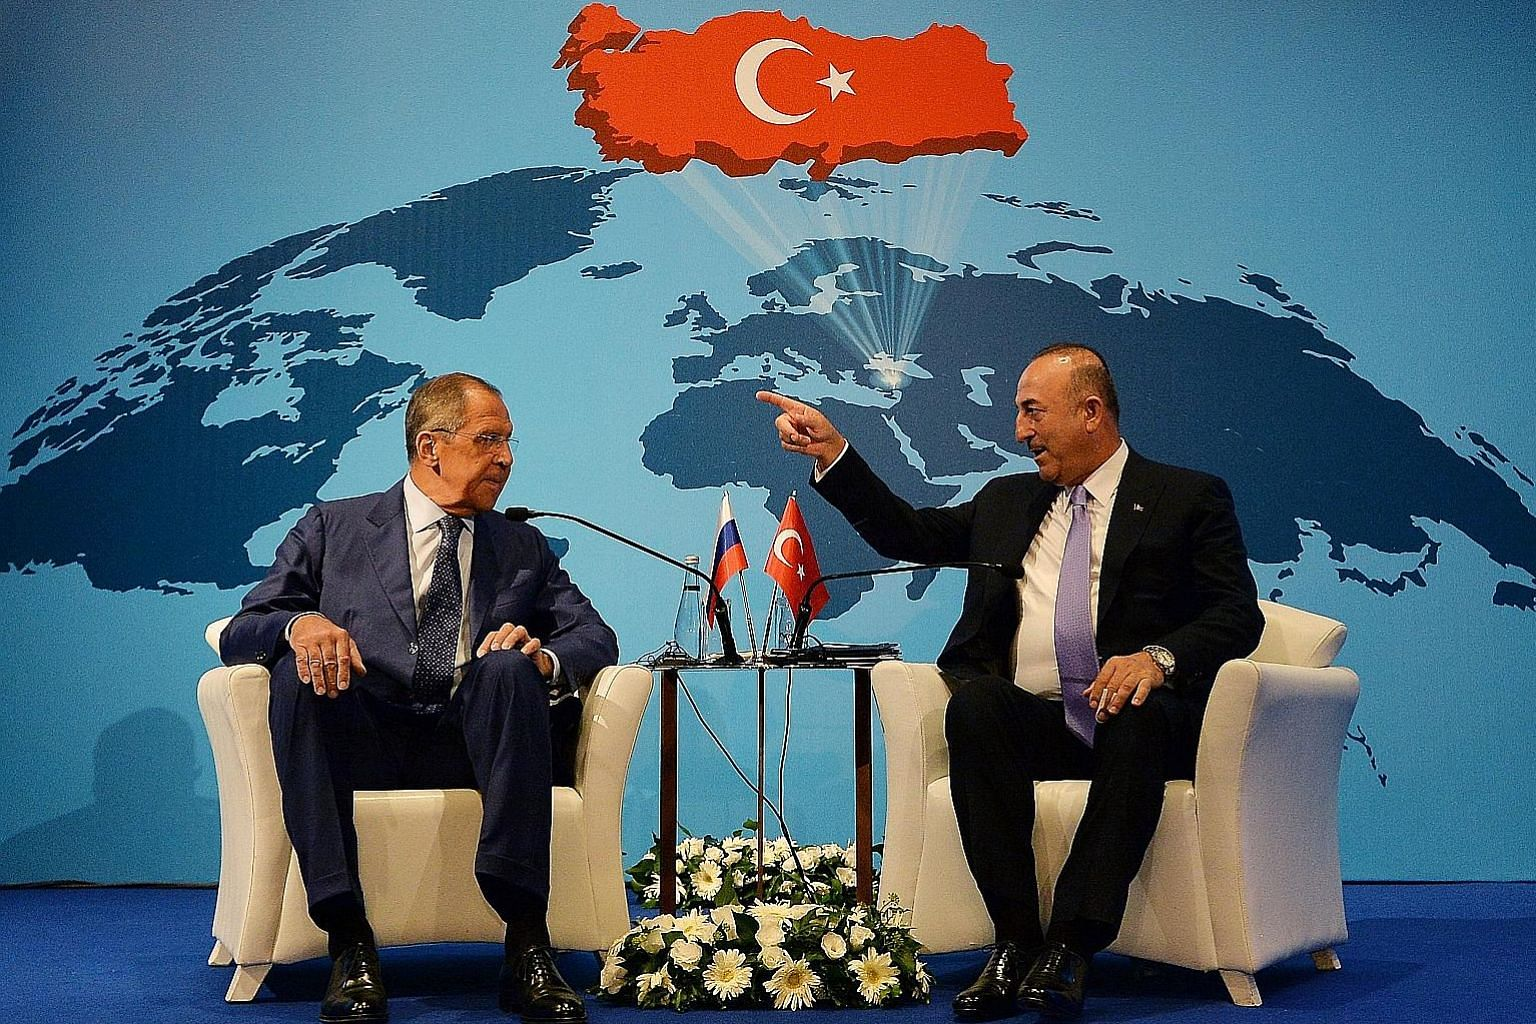 Russian Foreign Minister Sergey Lavrov (far left) meeting his Turkish counterpart Mevlut Cavusoglu in Ankara on Tuesday. Both countries are drawing closer to each other largely because of the US imposing sanctions on them, says the writer.